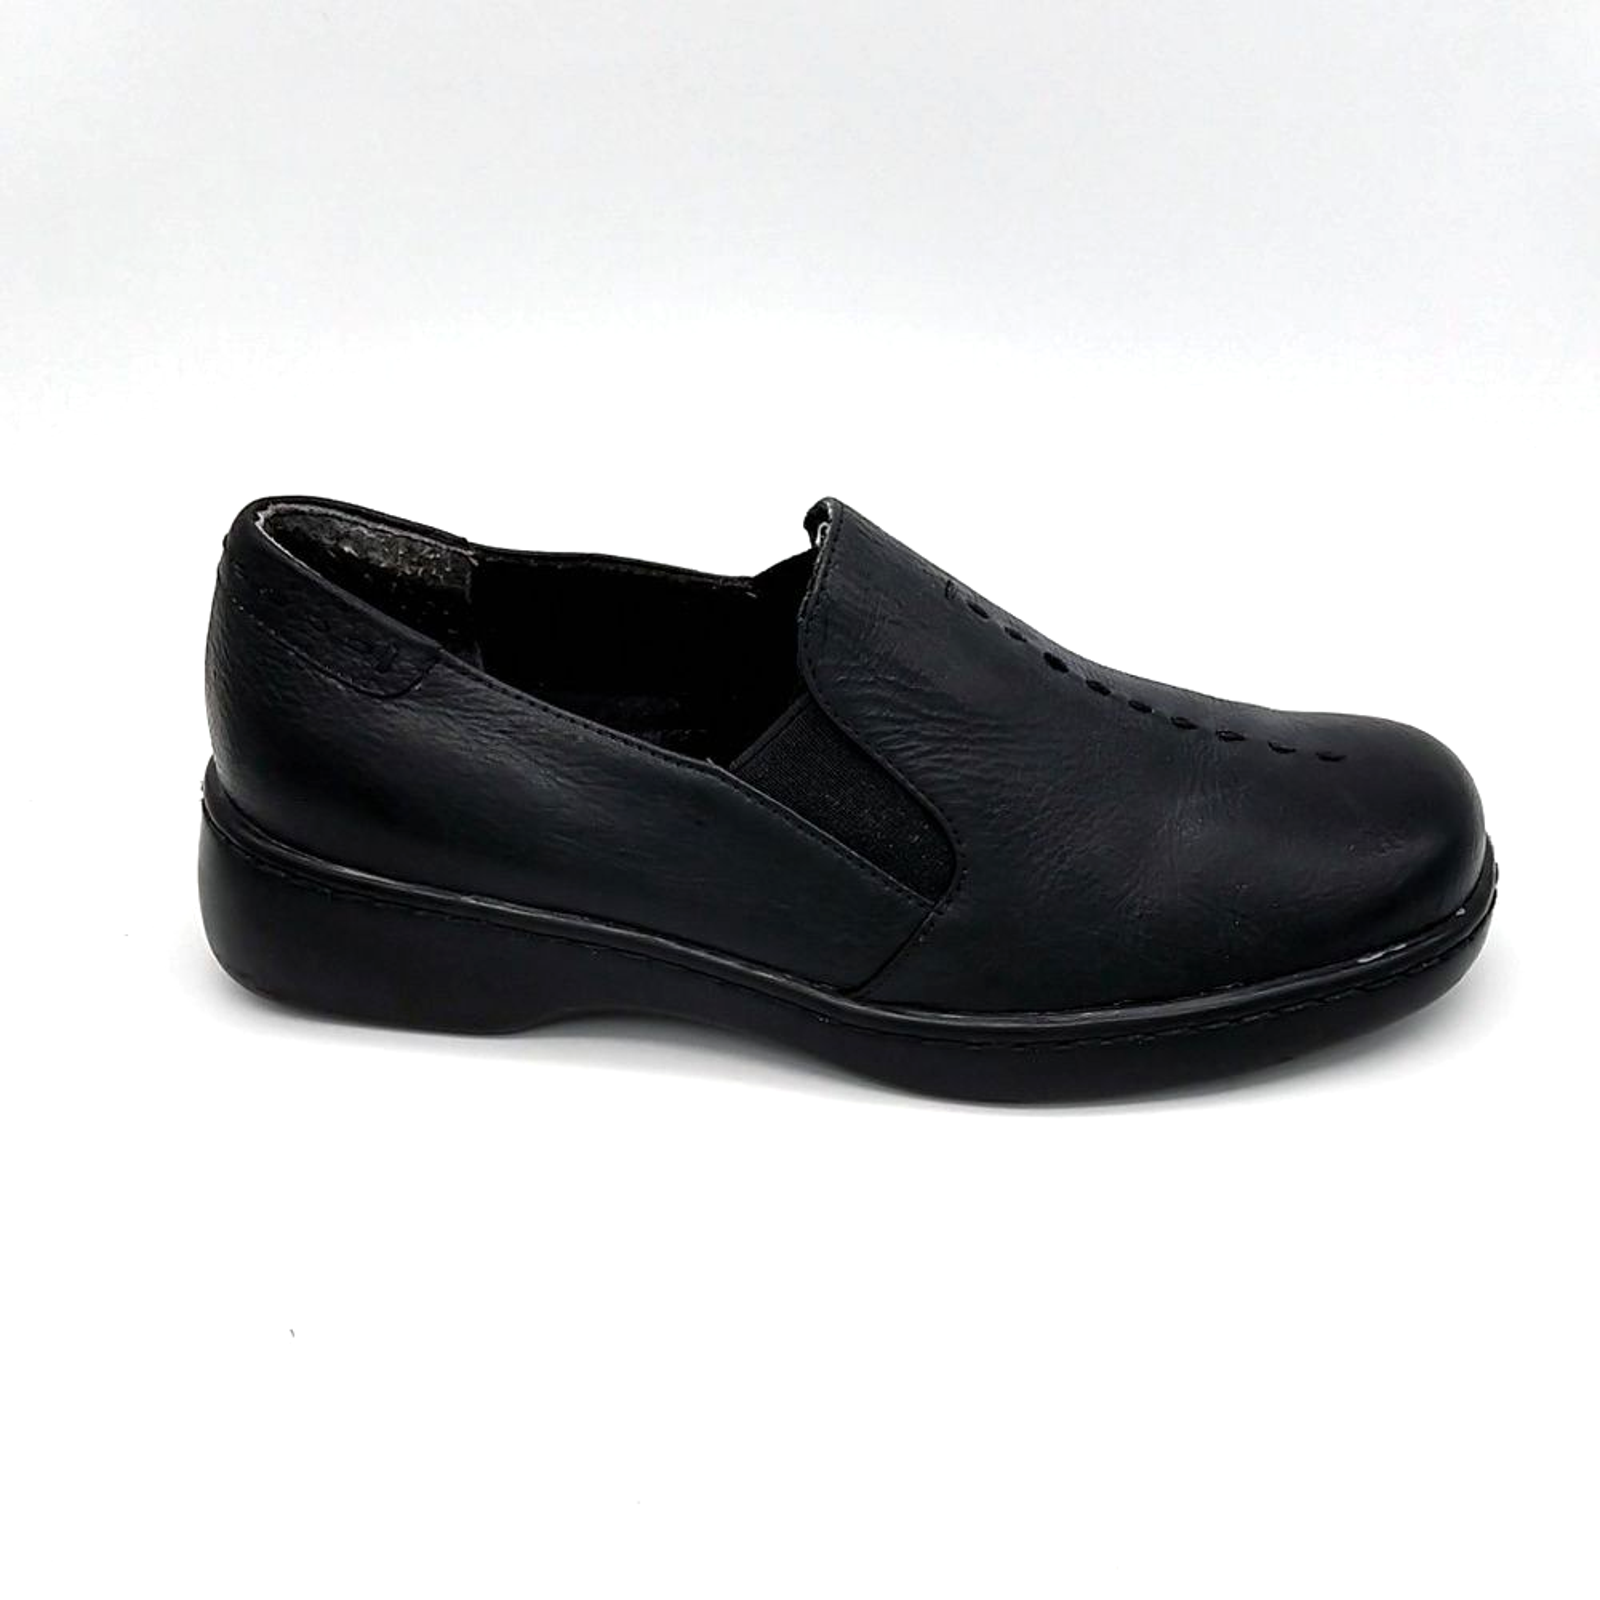 Naturalizer Music Slip-On Leather Shoes 7.5W - $28.42